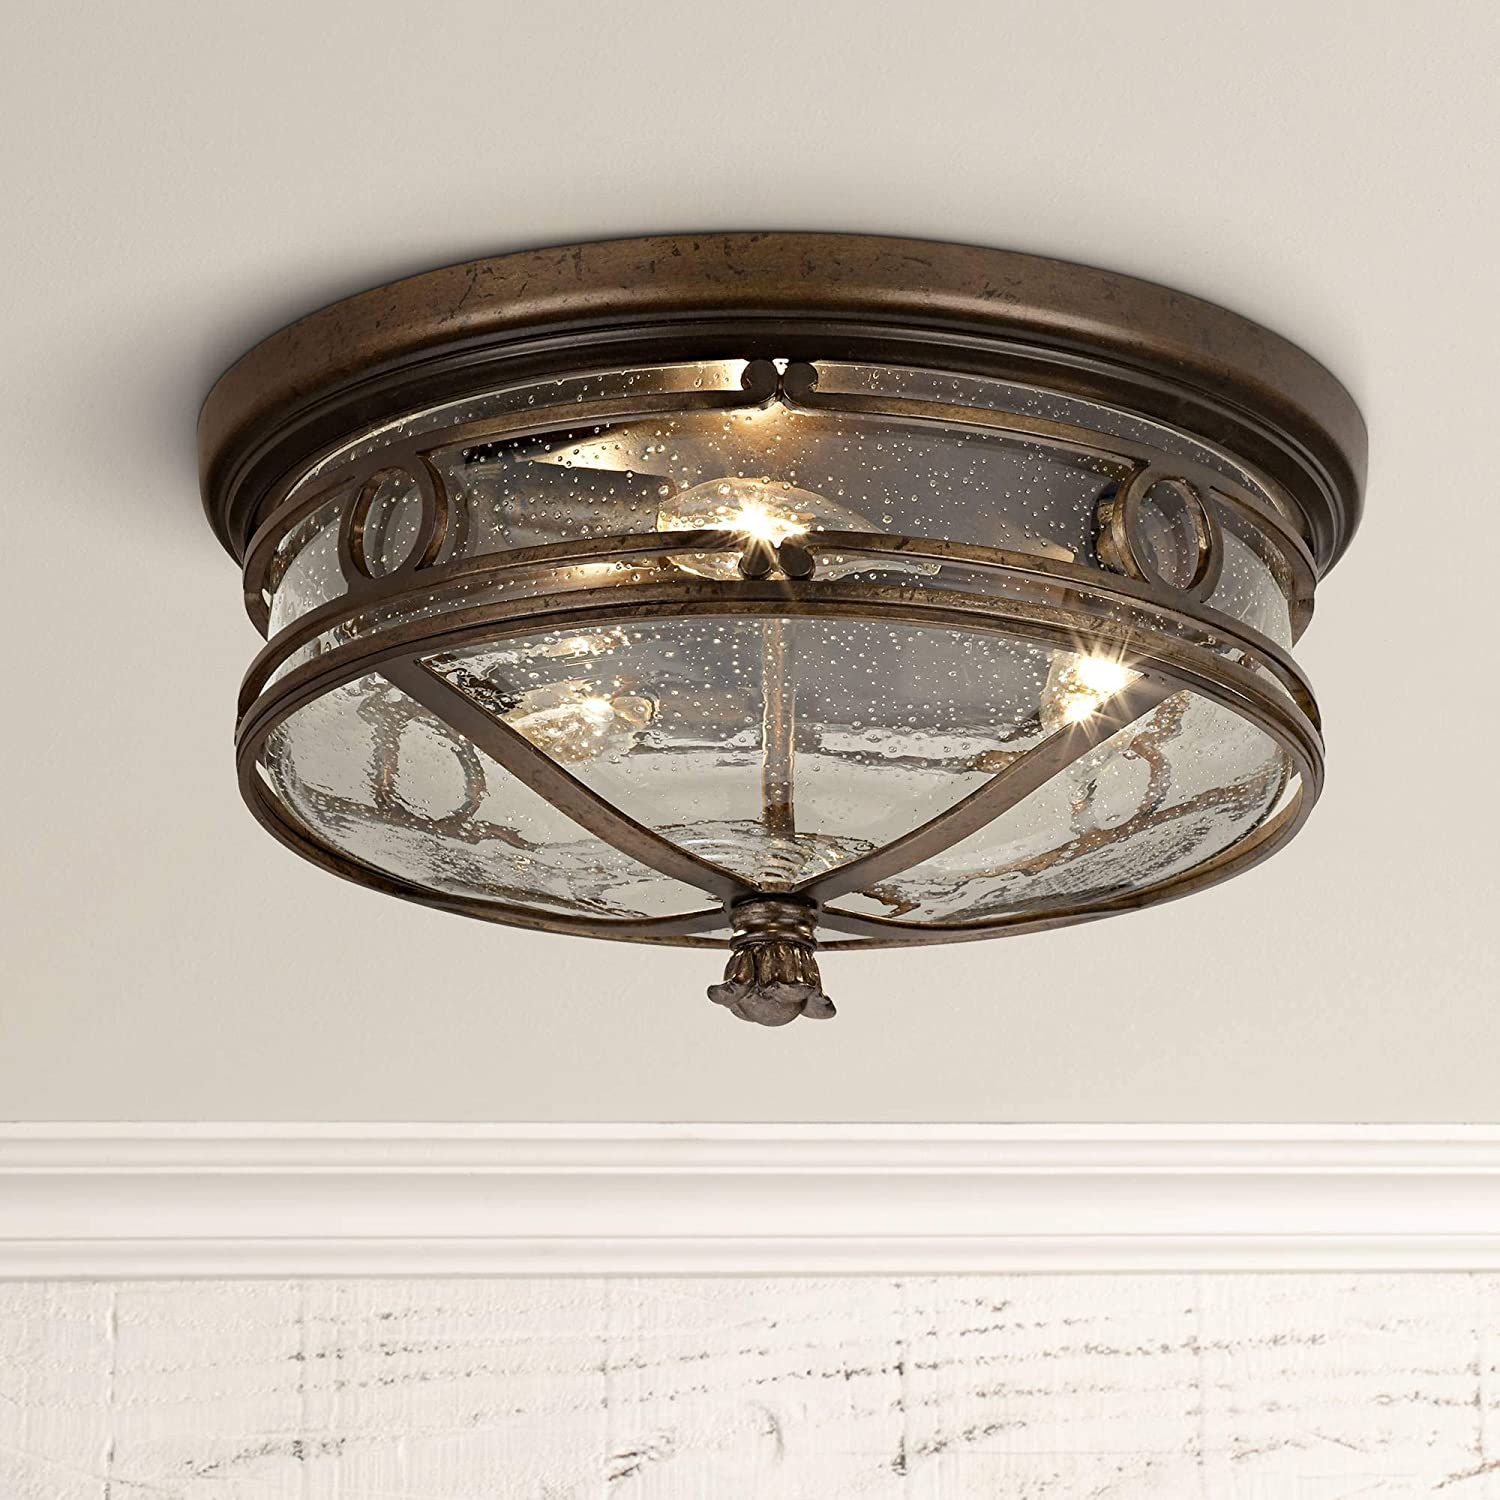 Beverly drive rustic outdoor ceiling light fixture bronze 14 flush mount clear seedy glass for exterior porch entryway patio deck lighting john